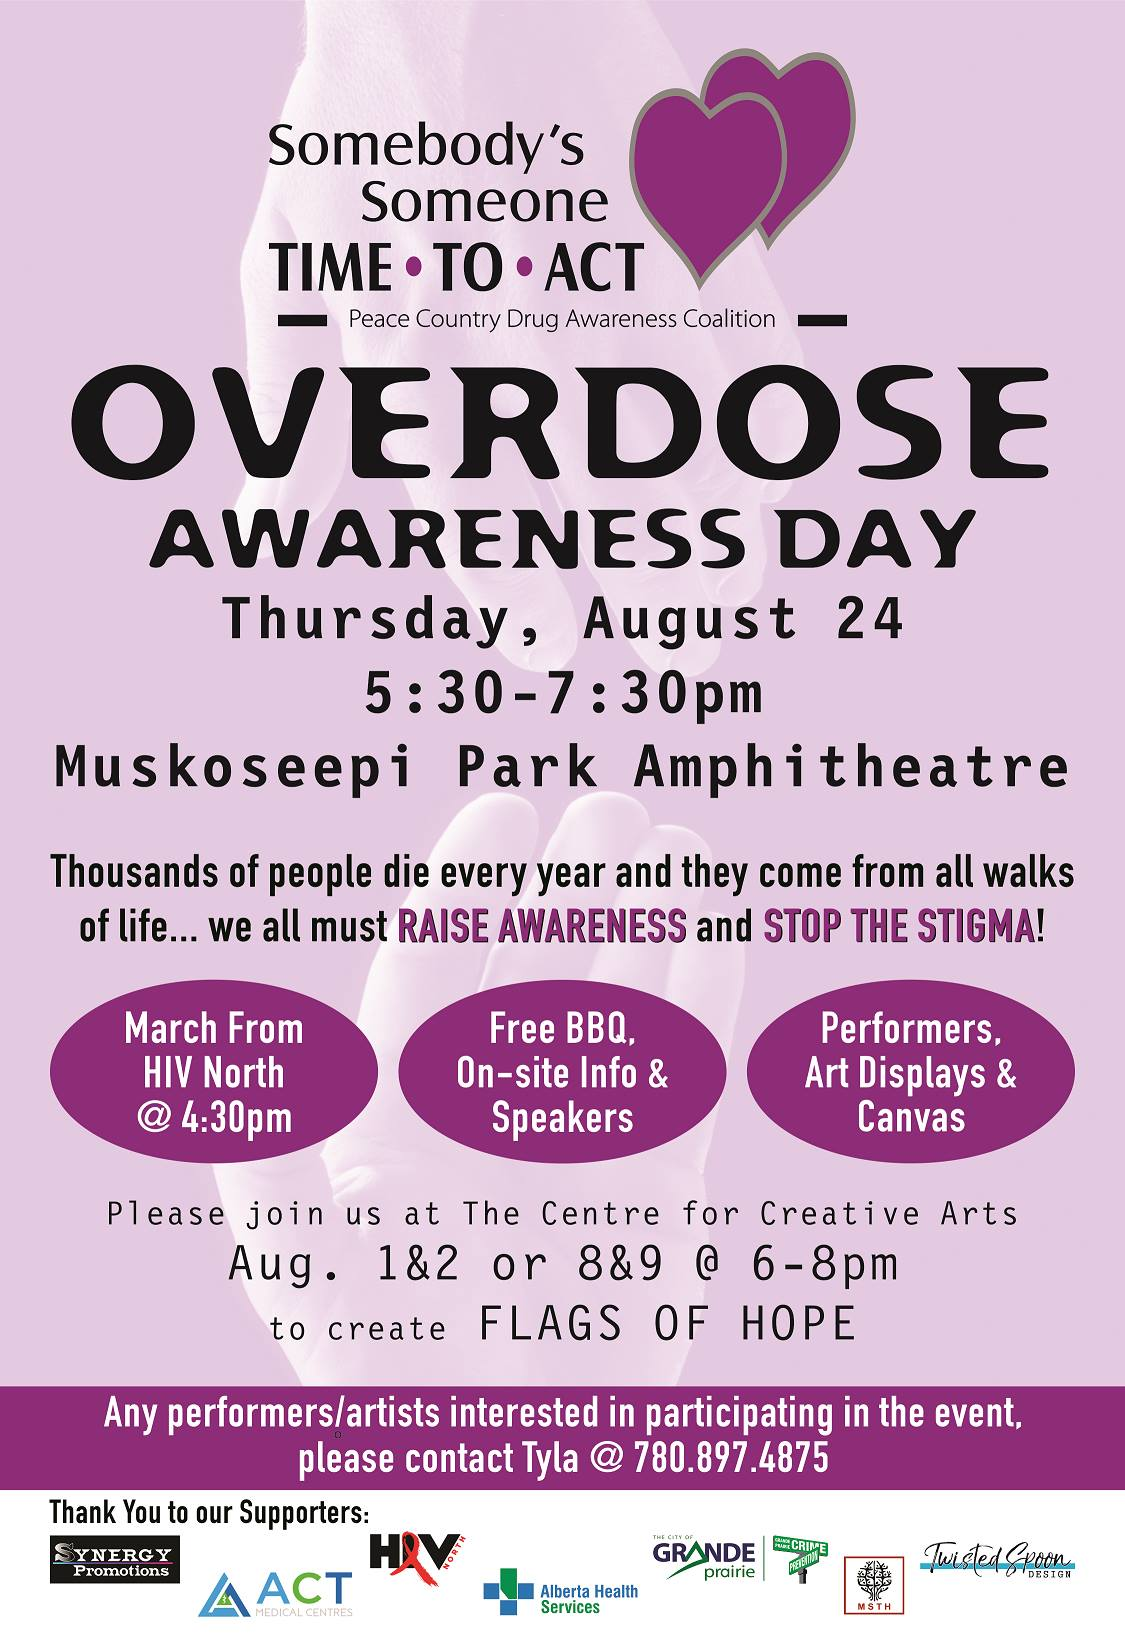 Peace Country to recognize Overdose Awareness Day on August 24